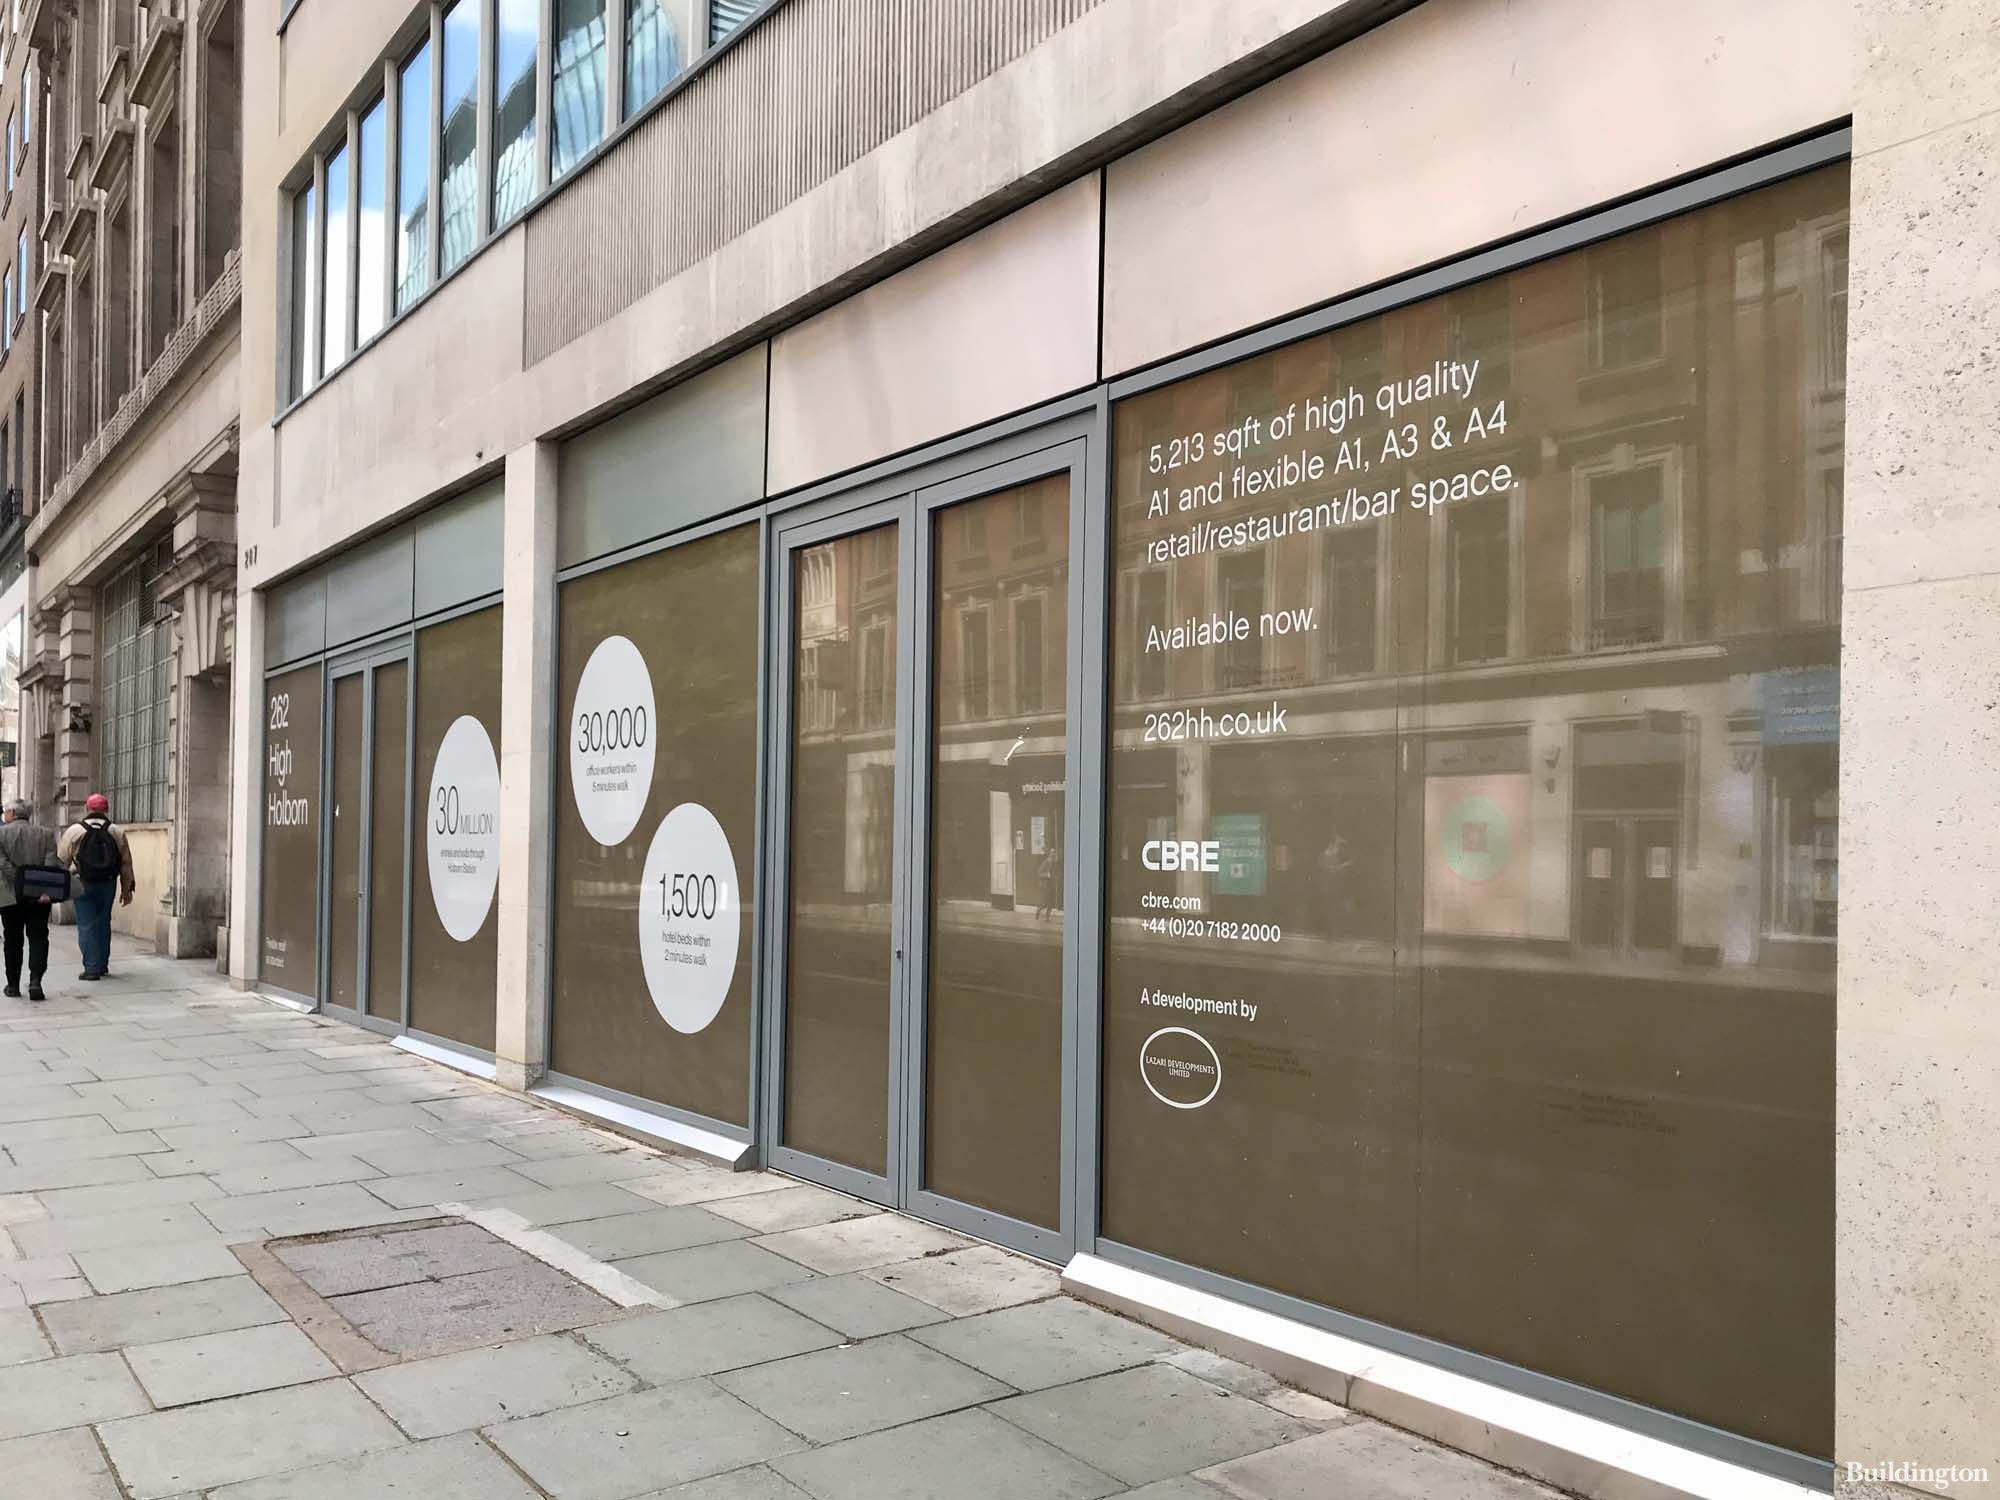 262 High Holborn restaurant/retail space to let by CBRE.